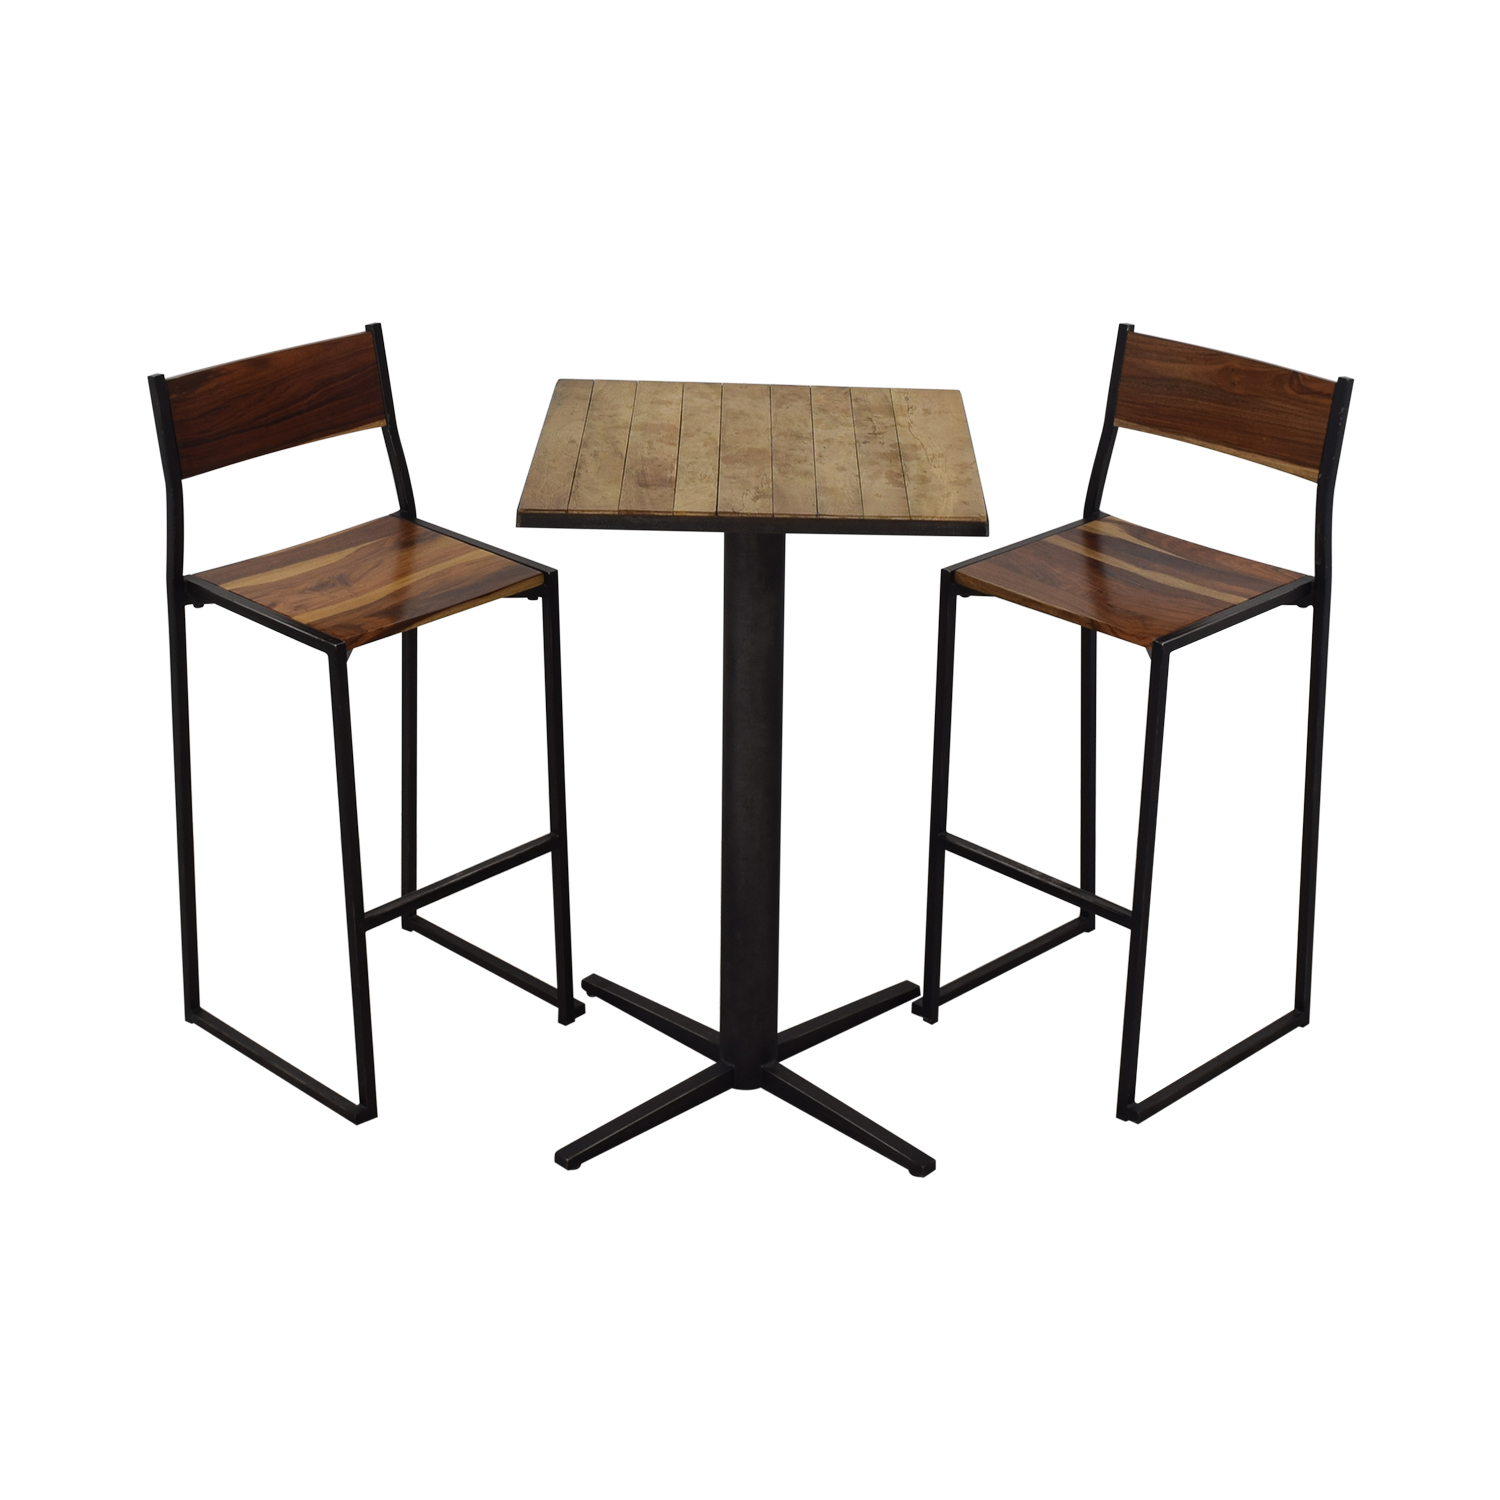 From the Source From the Source High Top Table and Bar Stools dimensions